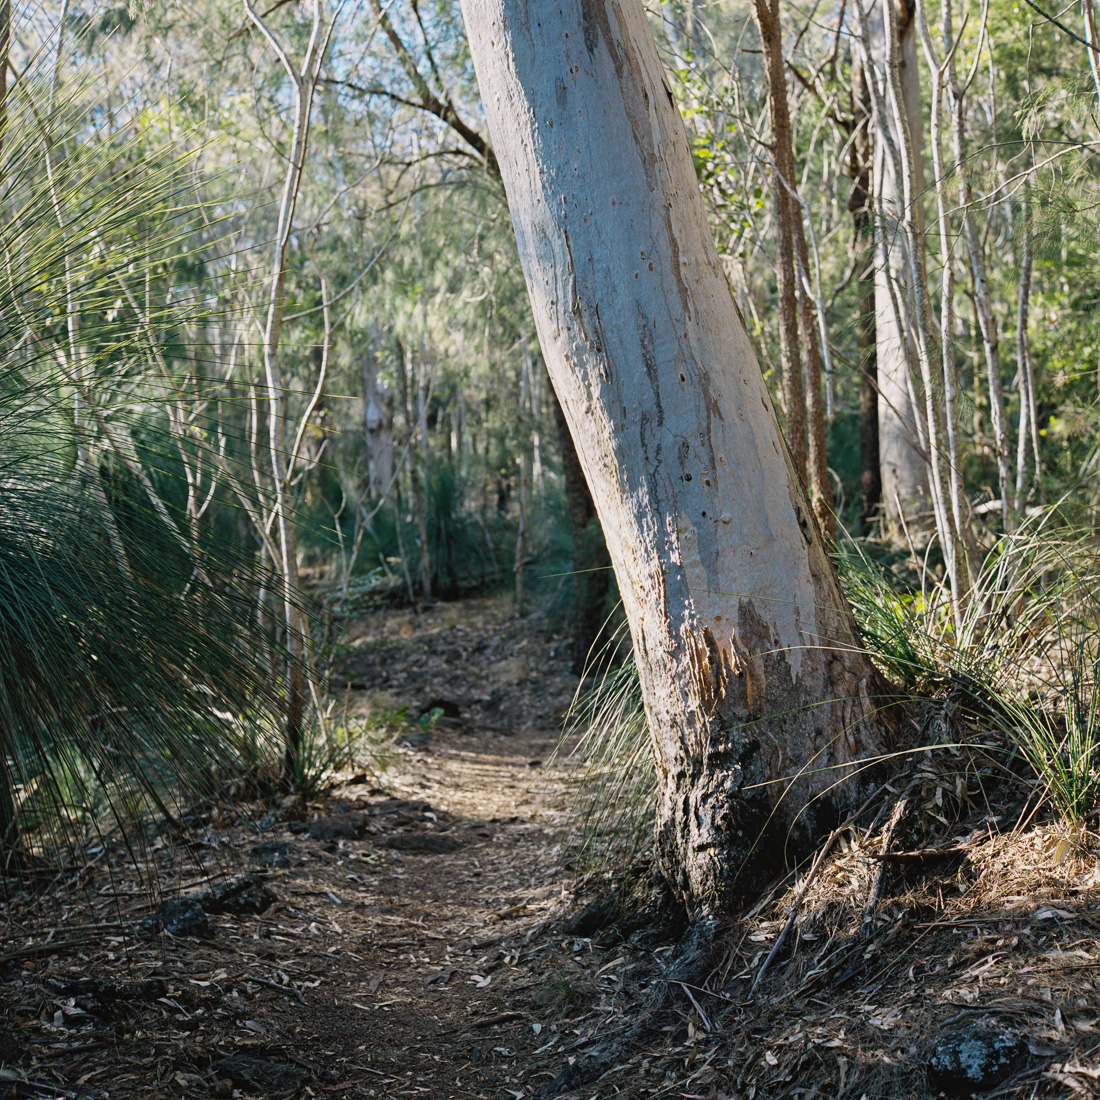 Grey gums and Australian forests.